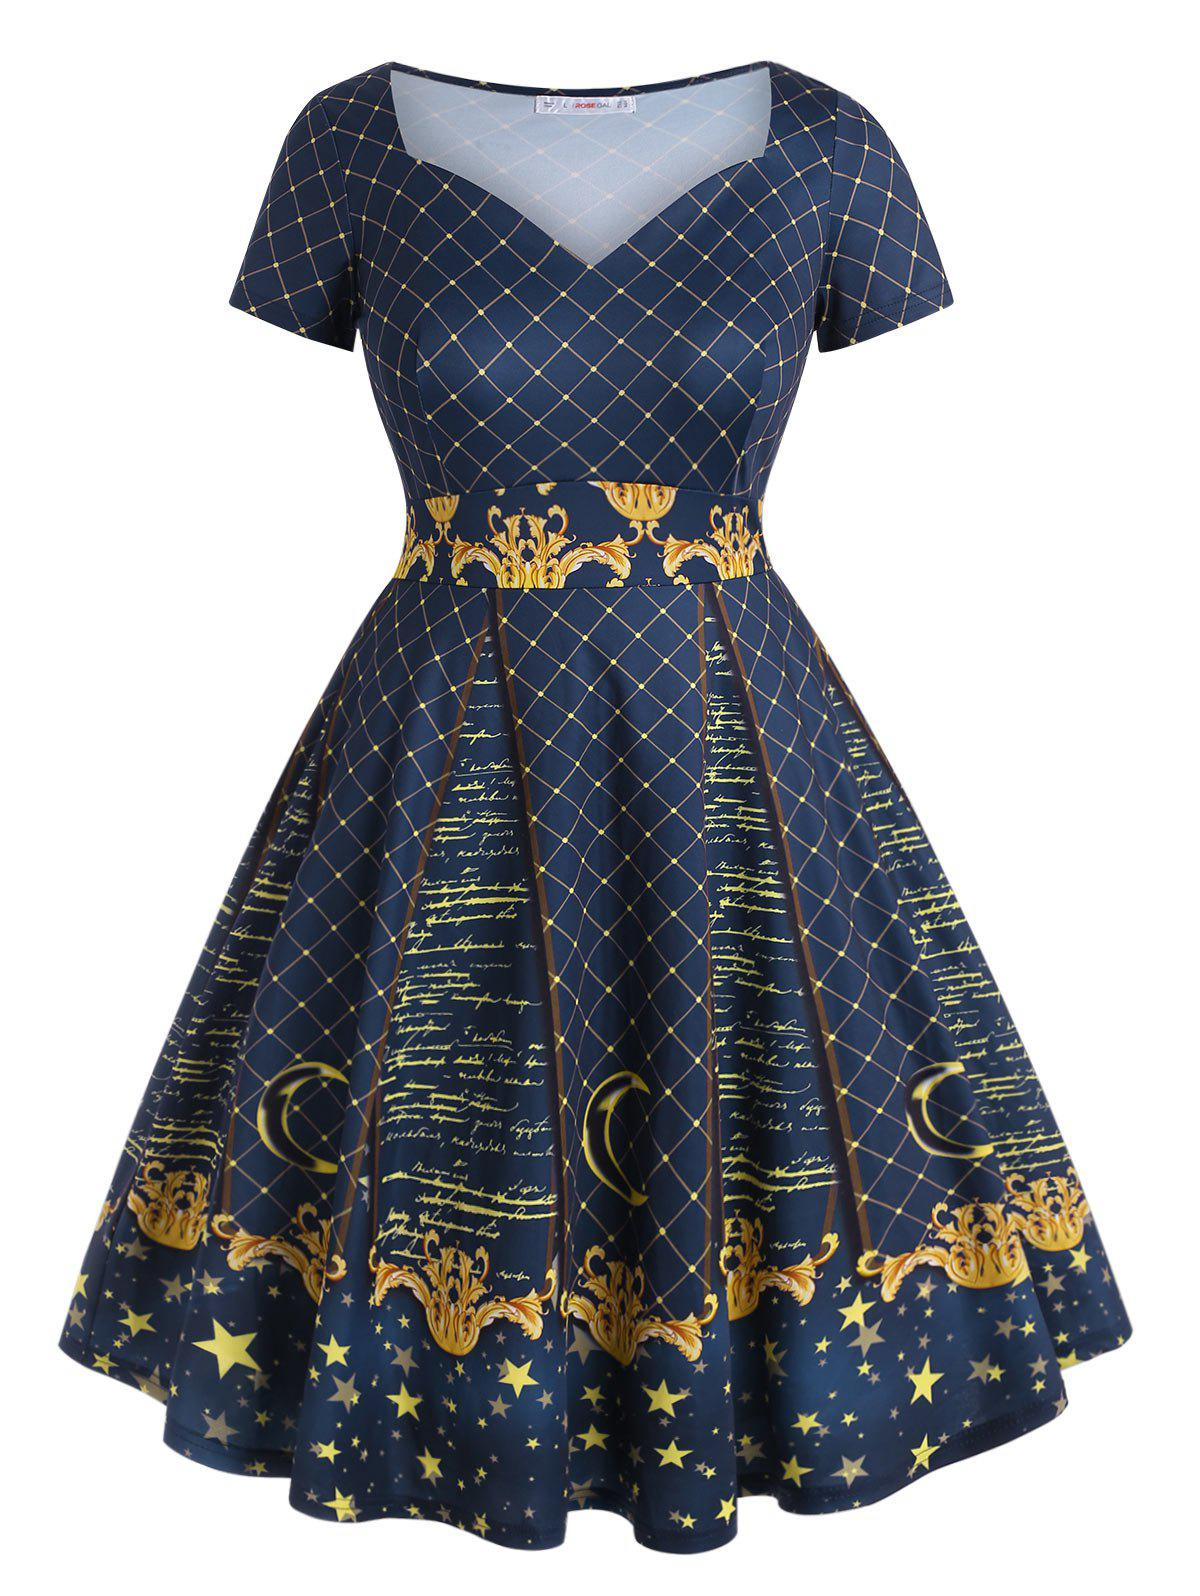 Checked Star Printed Sweetheart Plus Size Dress - DEEP BLUE L